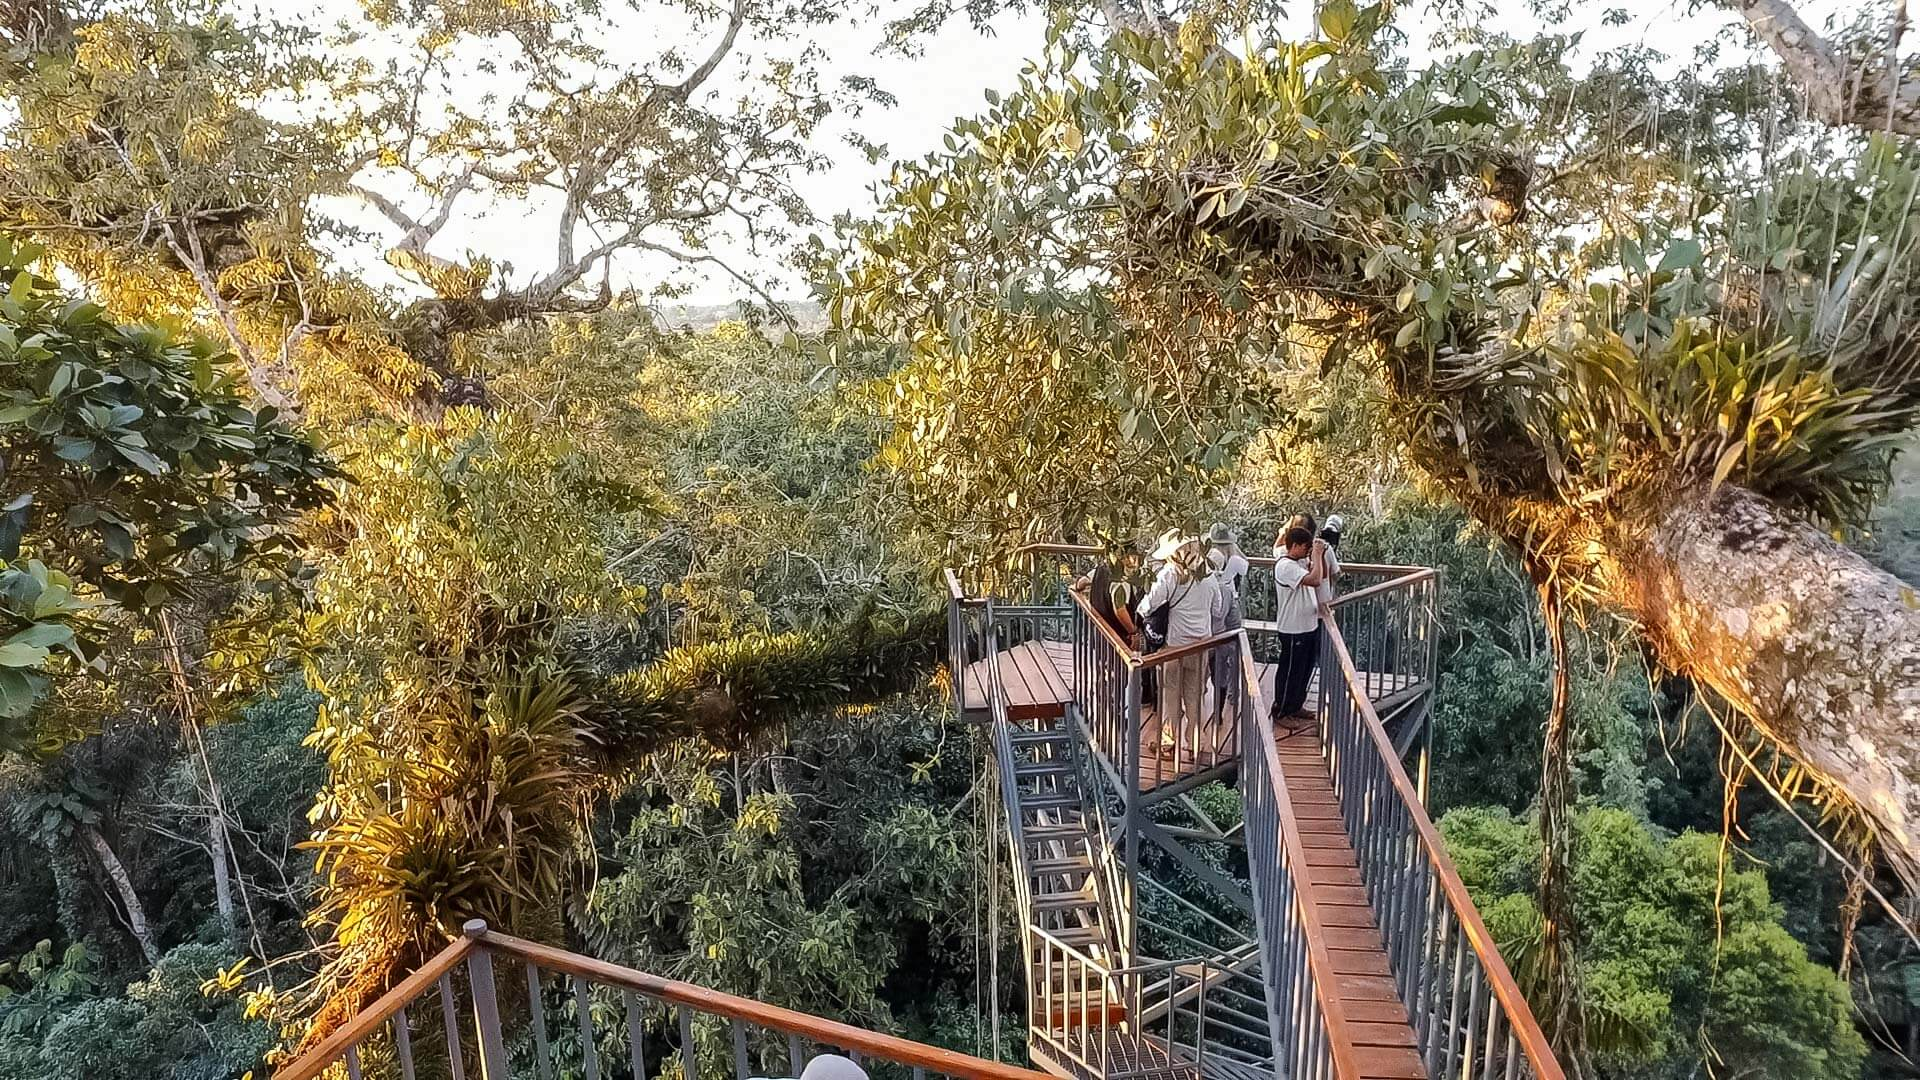 sacha lodge amazon canopy tower perfect for bird watching in ecuador